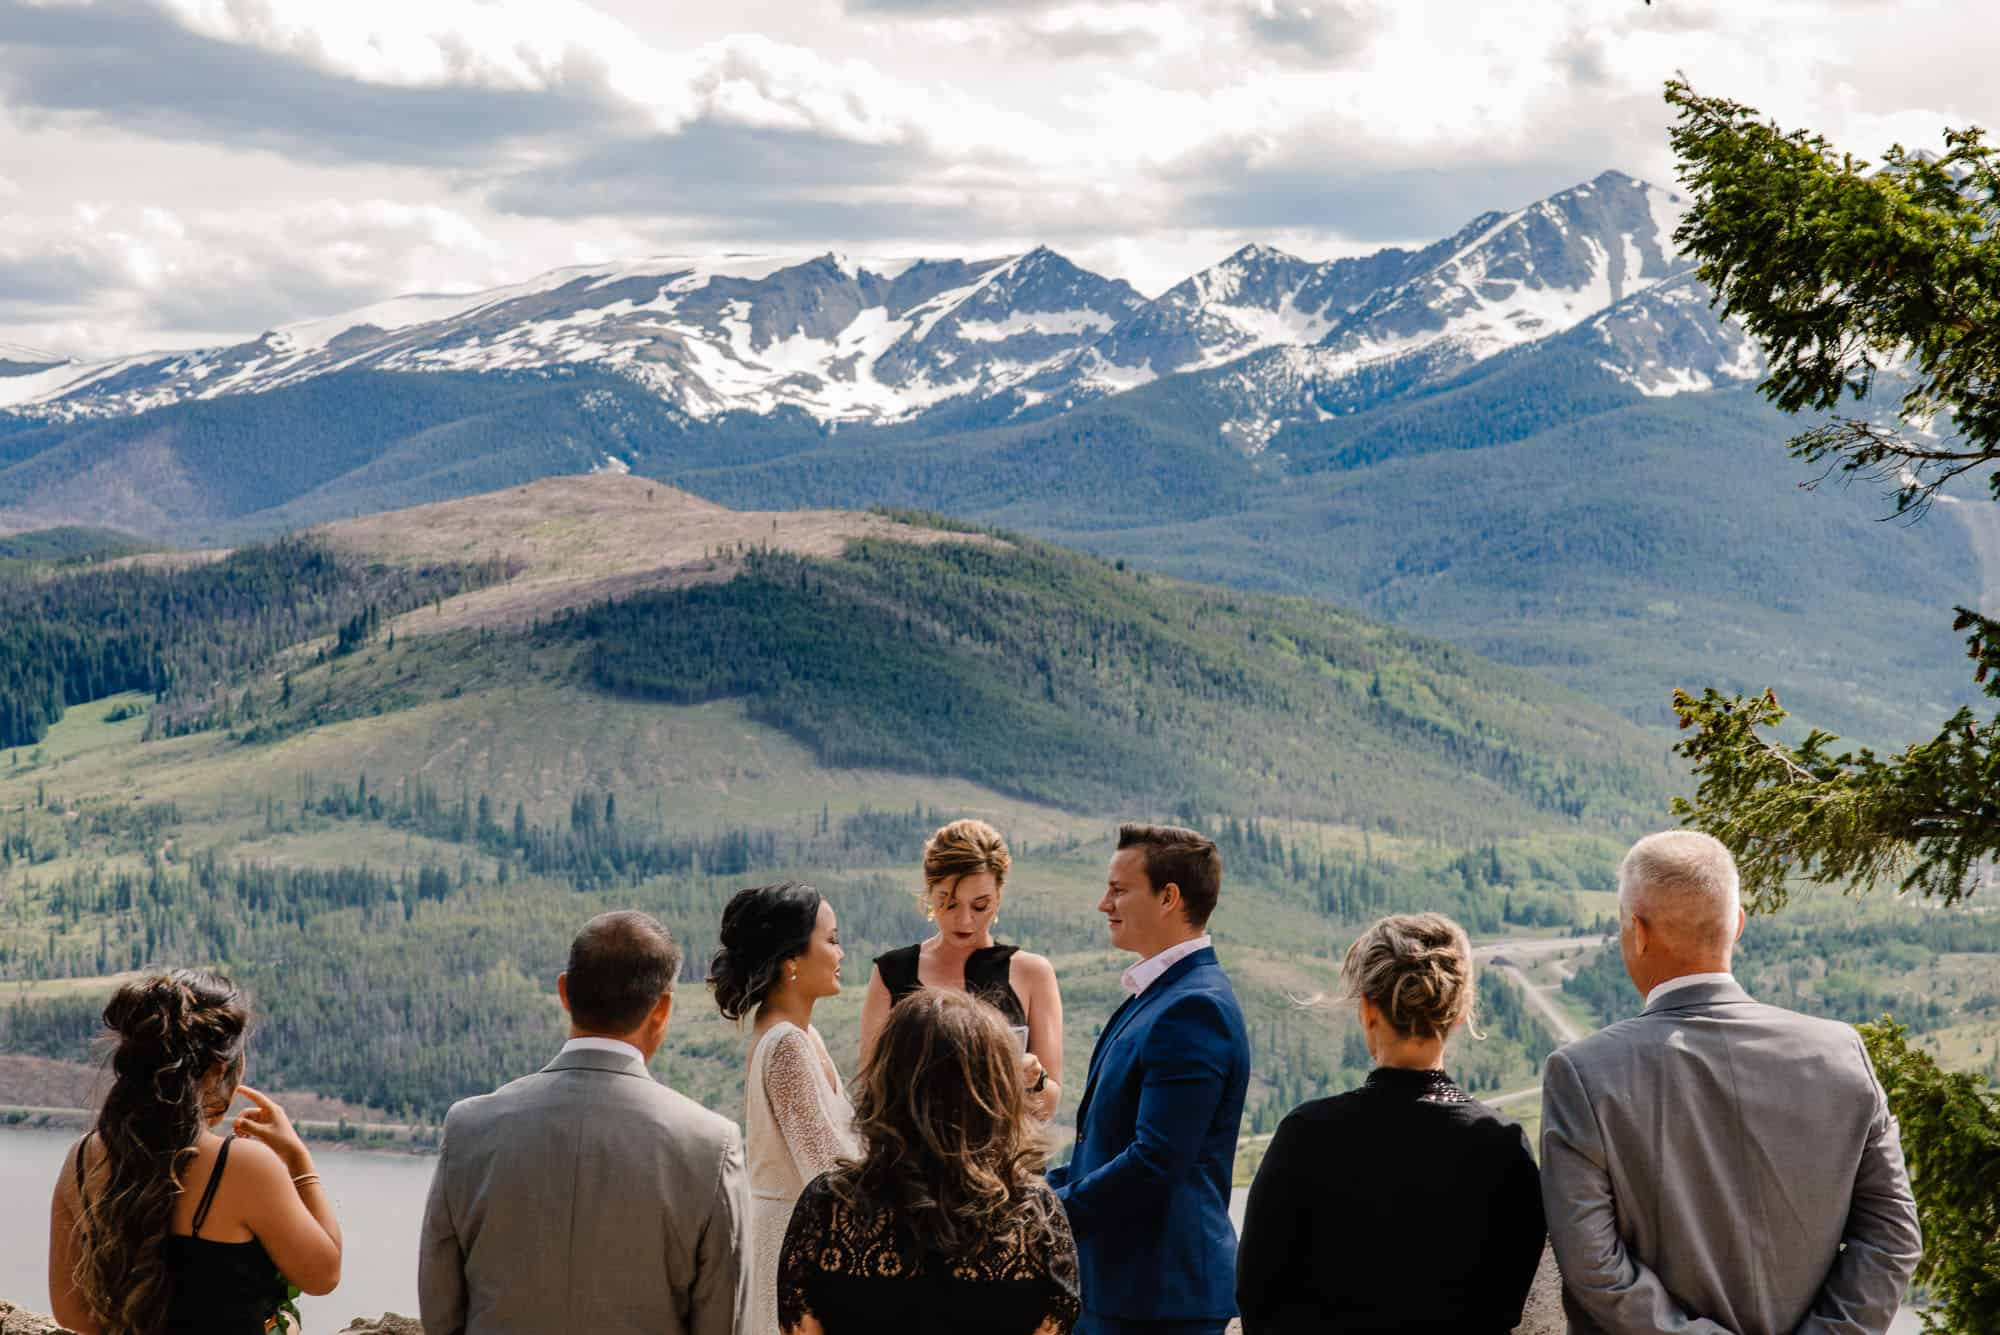 wedding guests and officiants gathering for a rocky mountain national park wedding